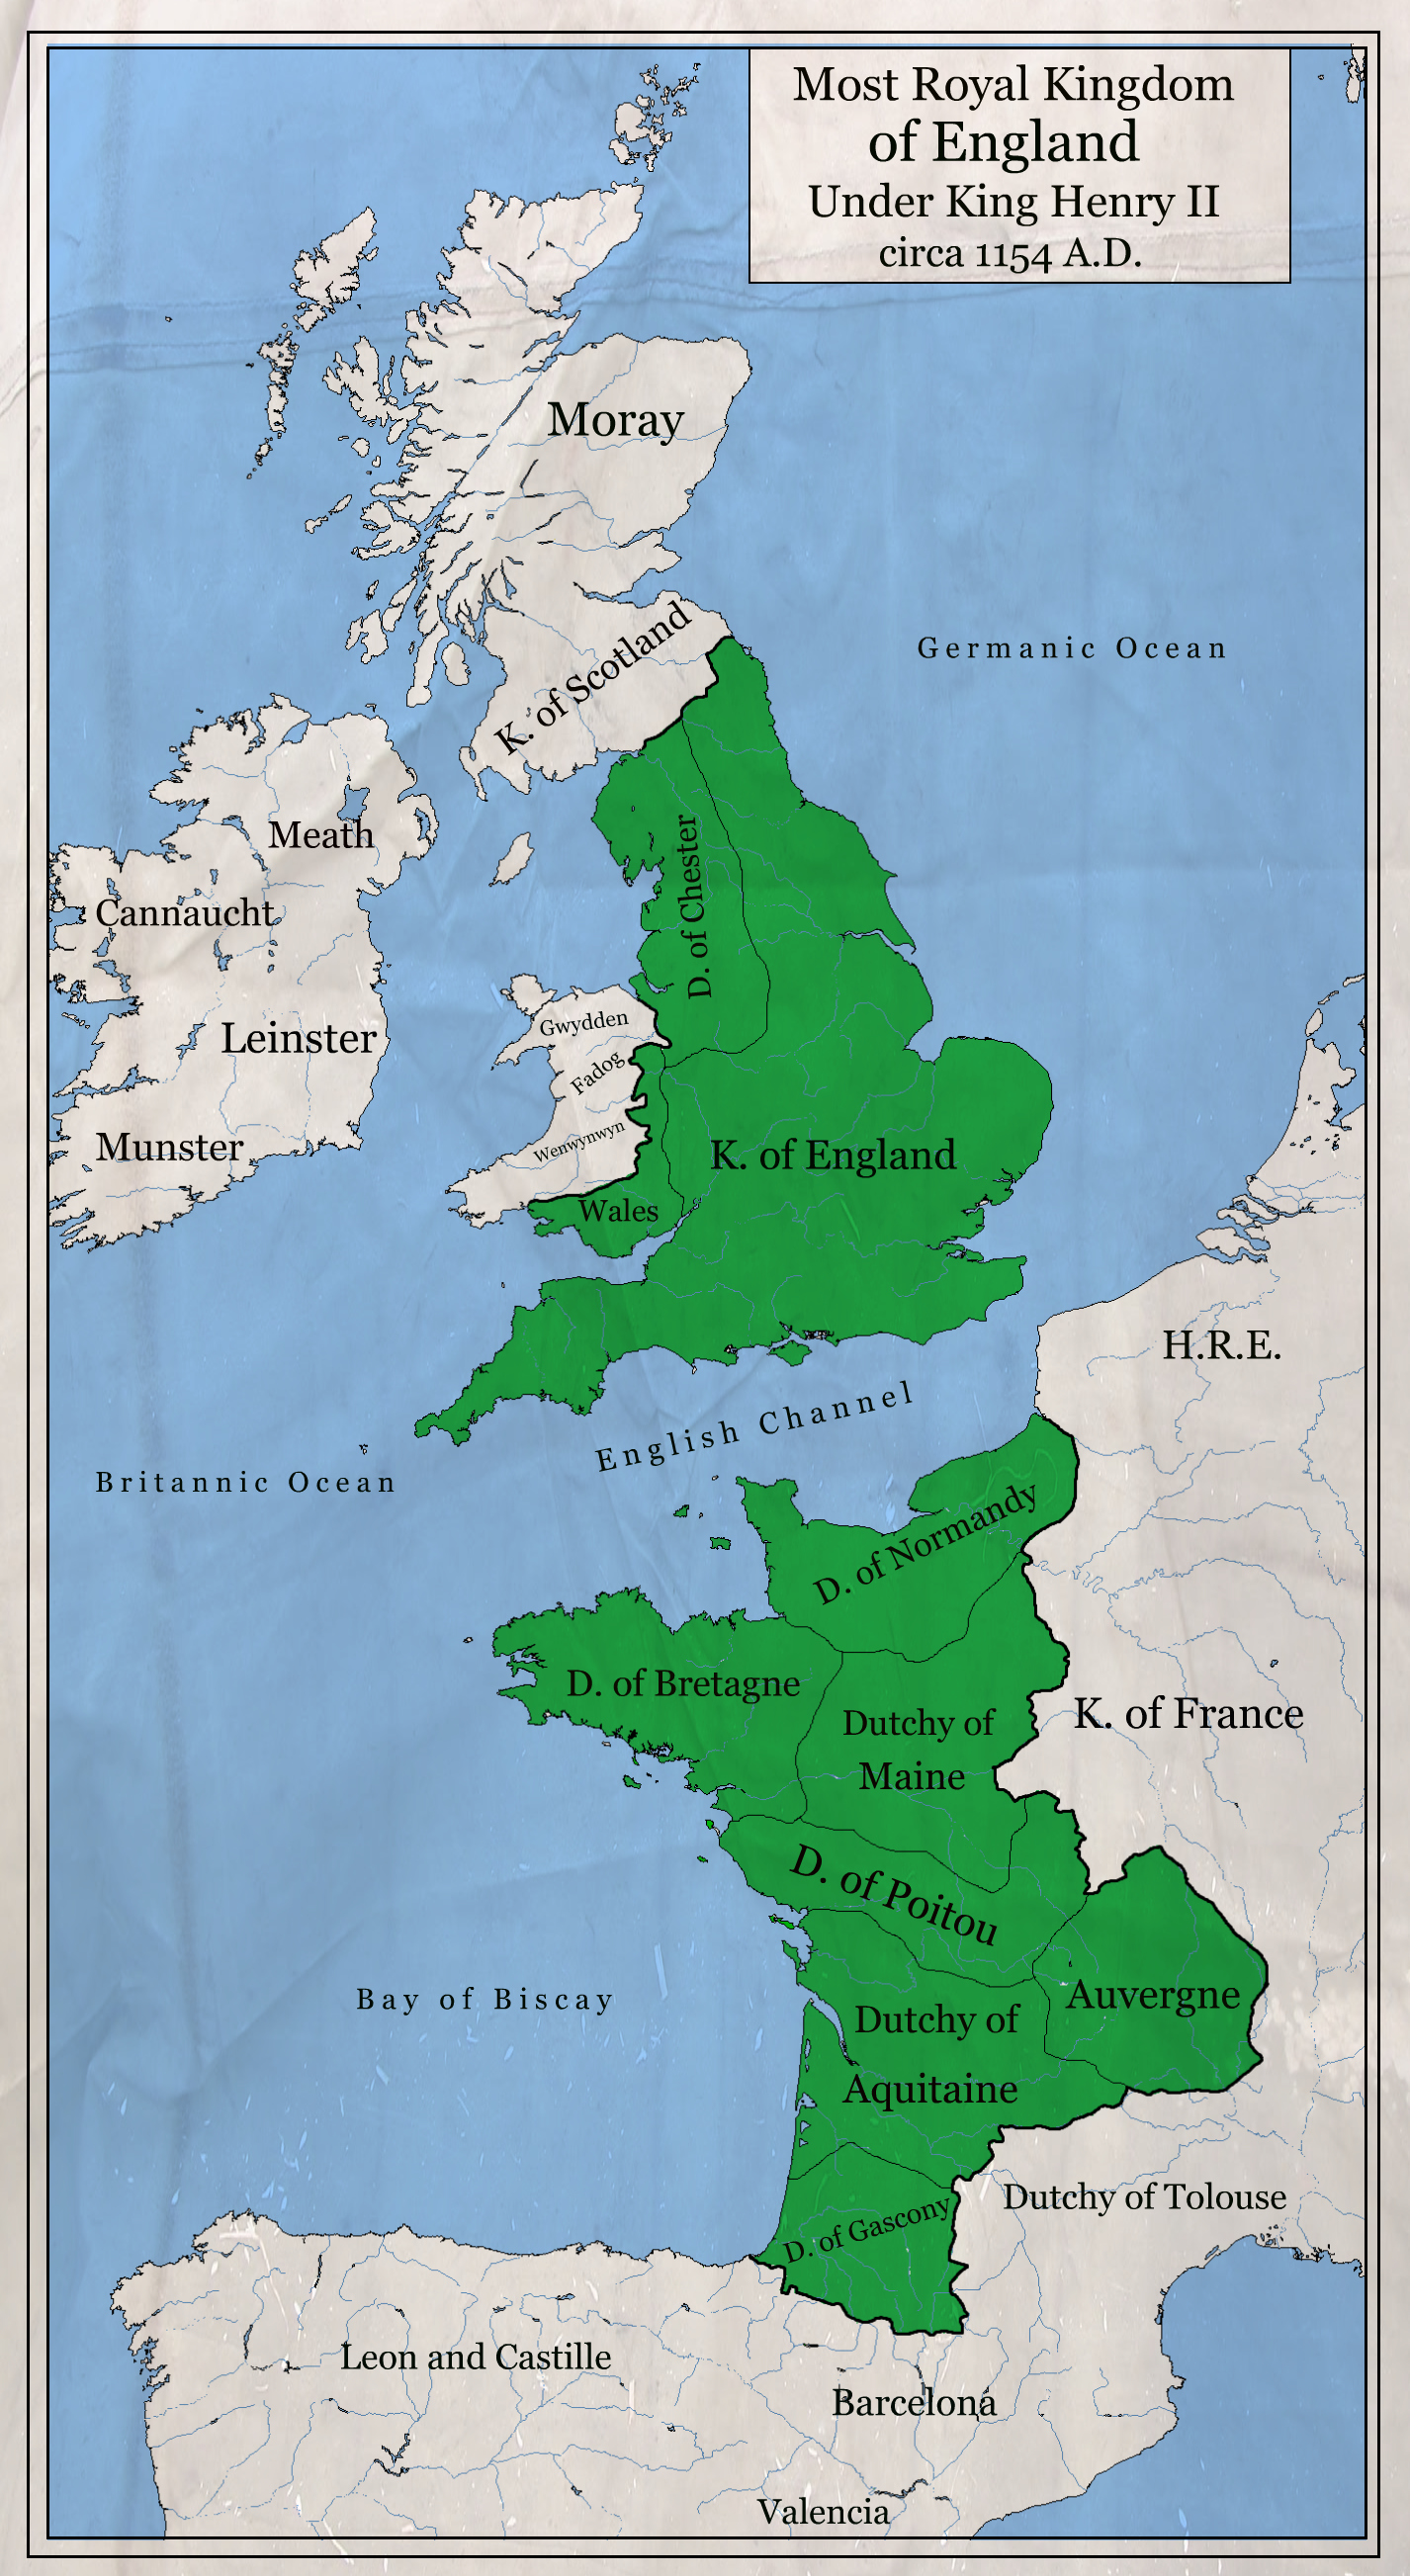 Most Royal Kingdom of England 1154 A.D. by zalezsky